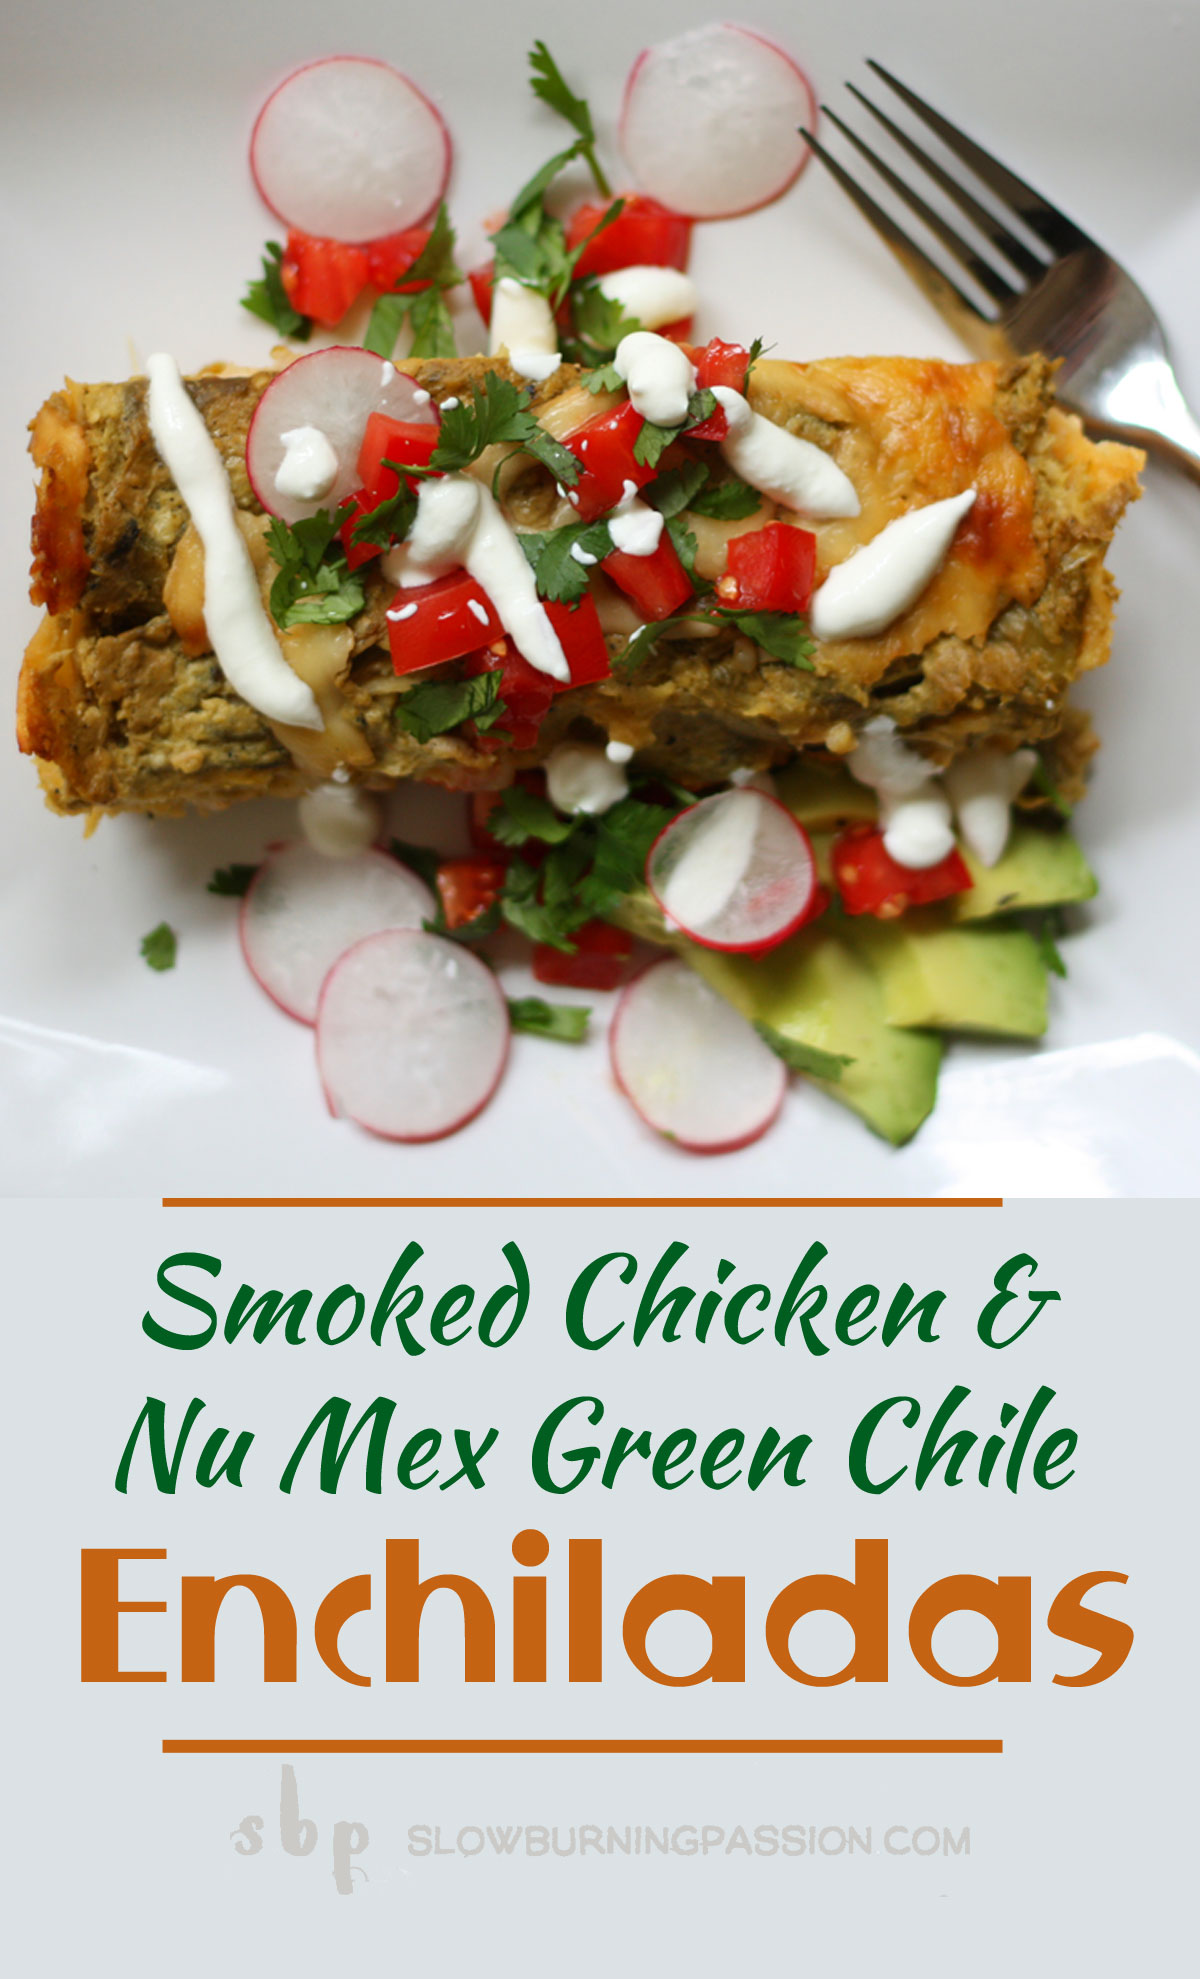 Smoked-Chicken-and-Nu-Mex-Green-Chile-Enchiladas